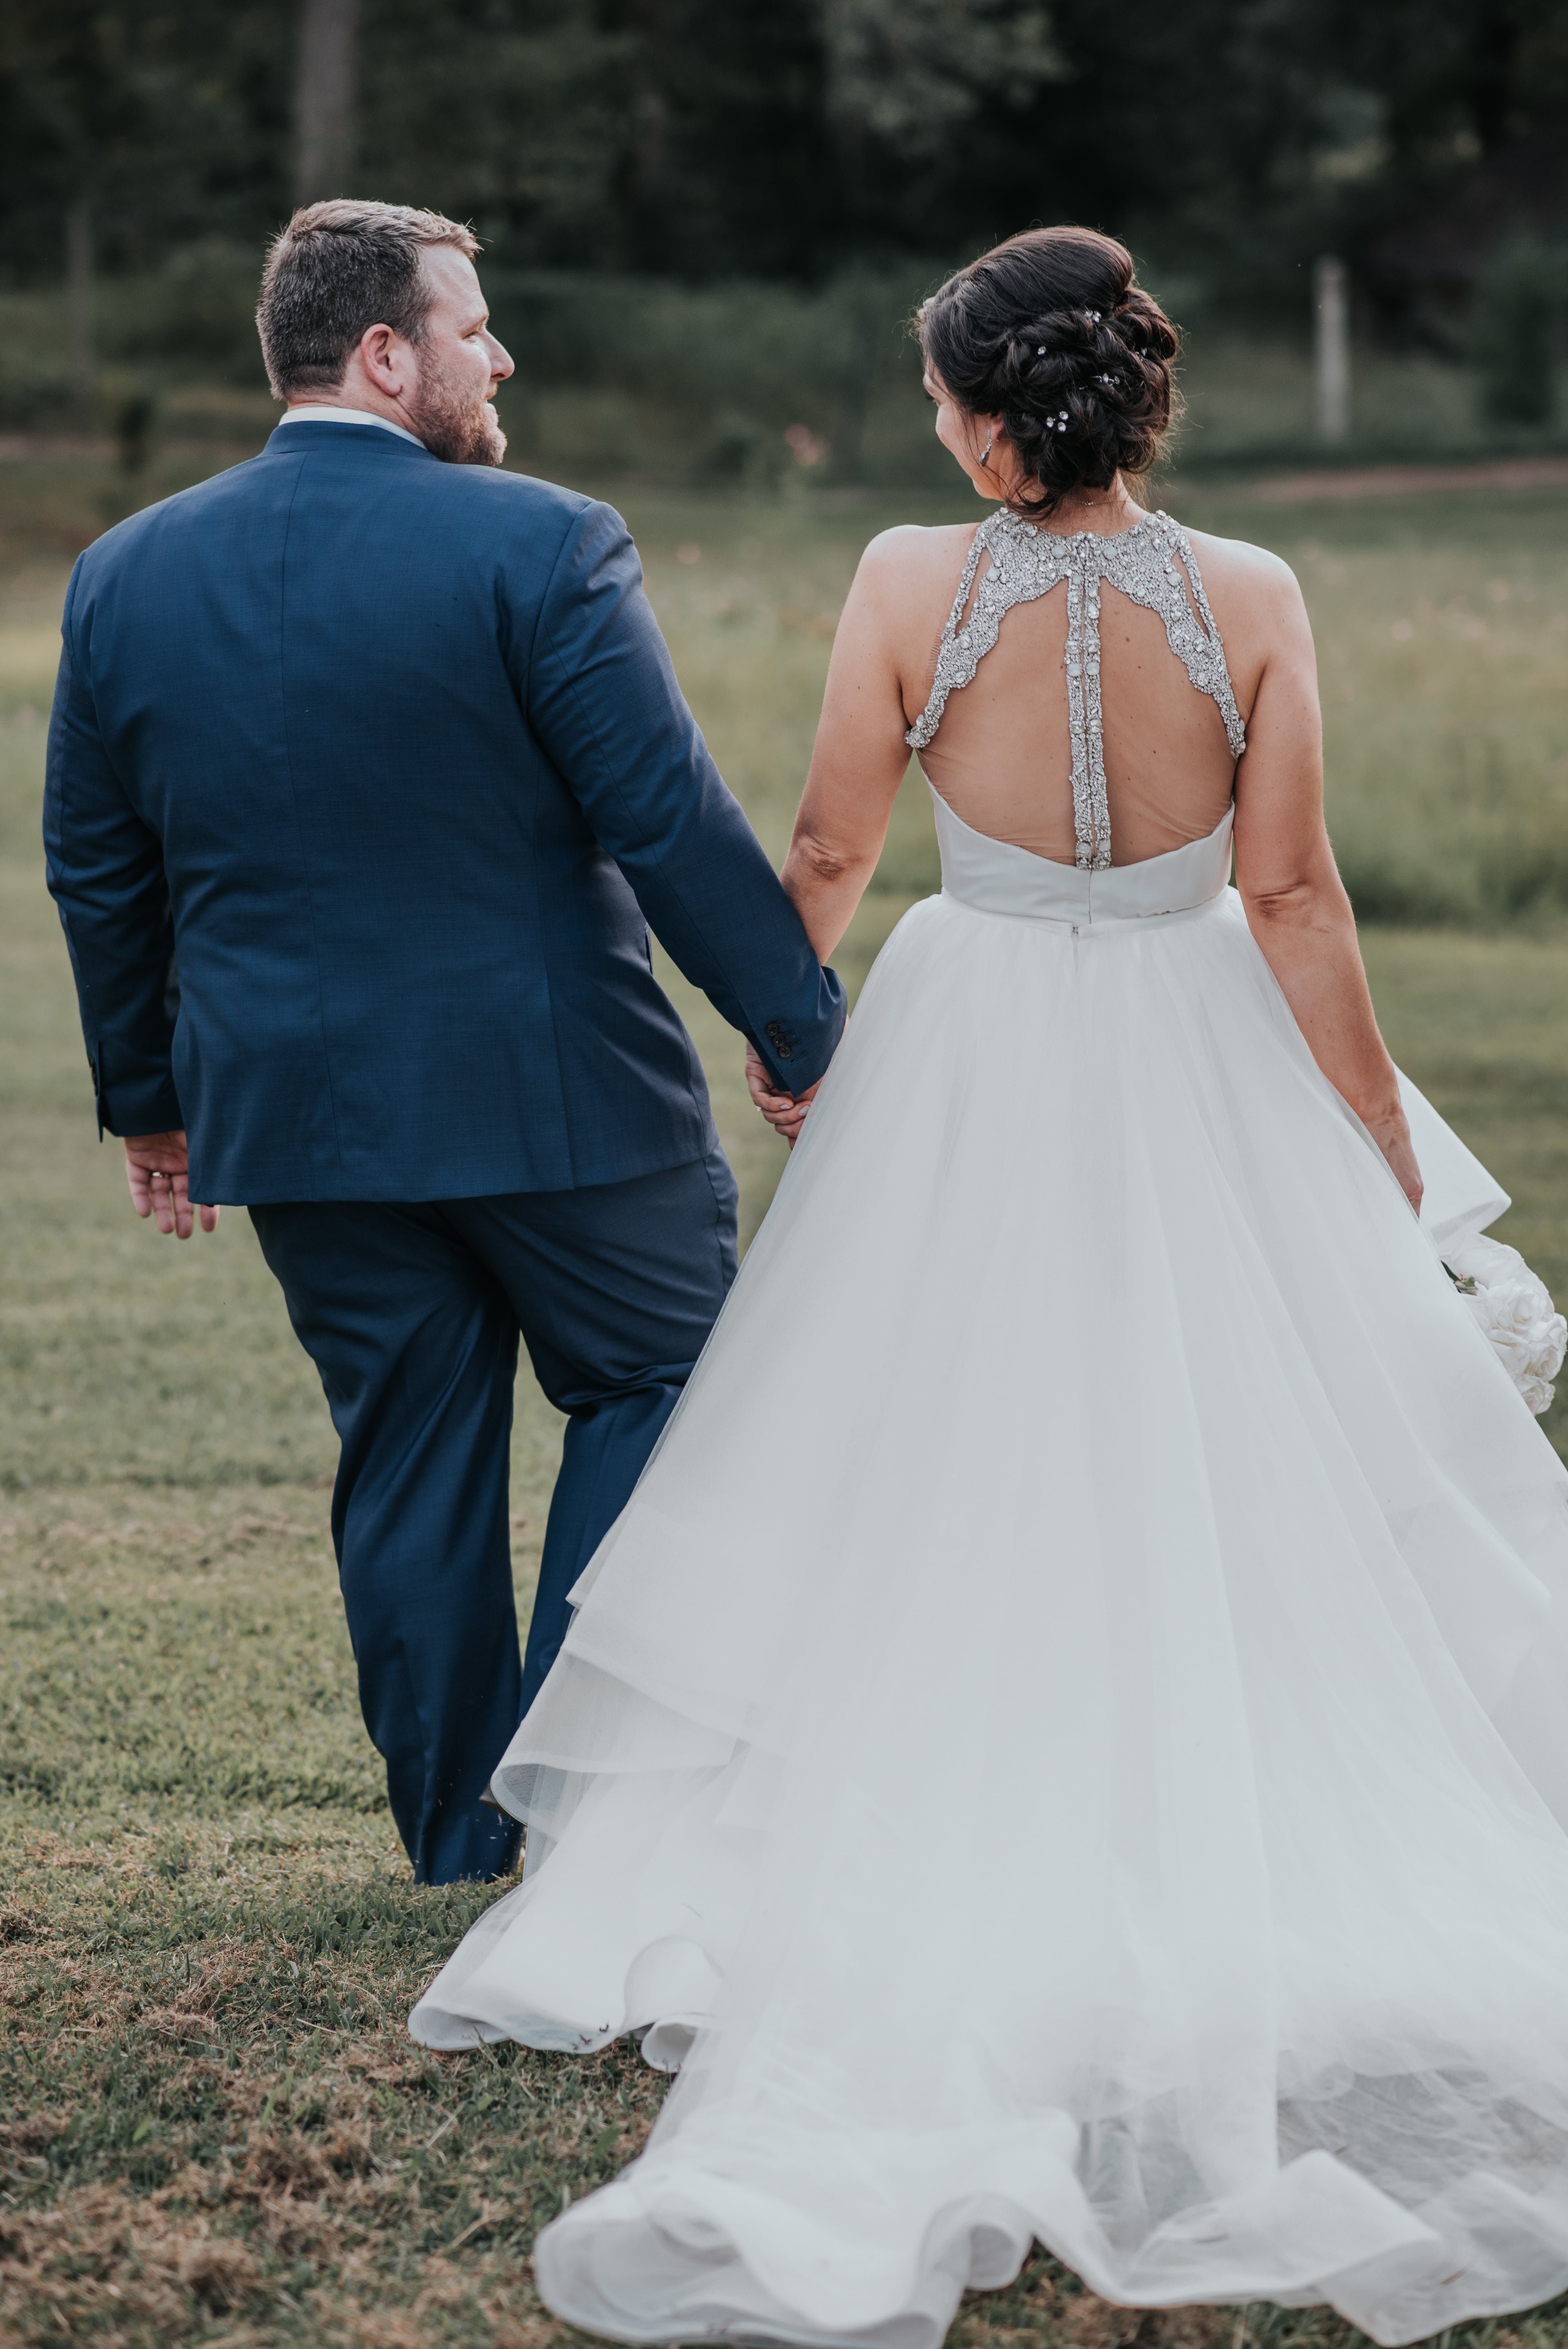 Magnificent Moments Weddings Shutterowl Photography The Ivy Place (46) Min